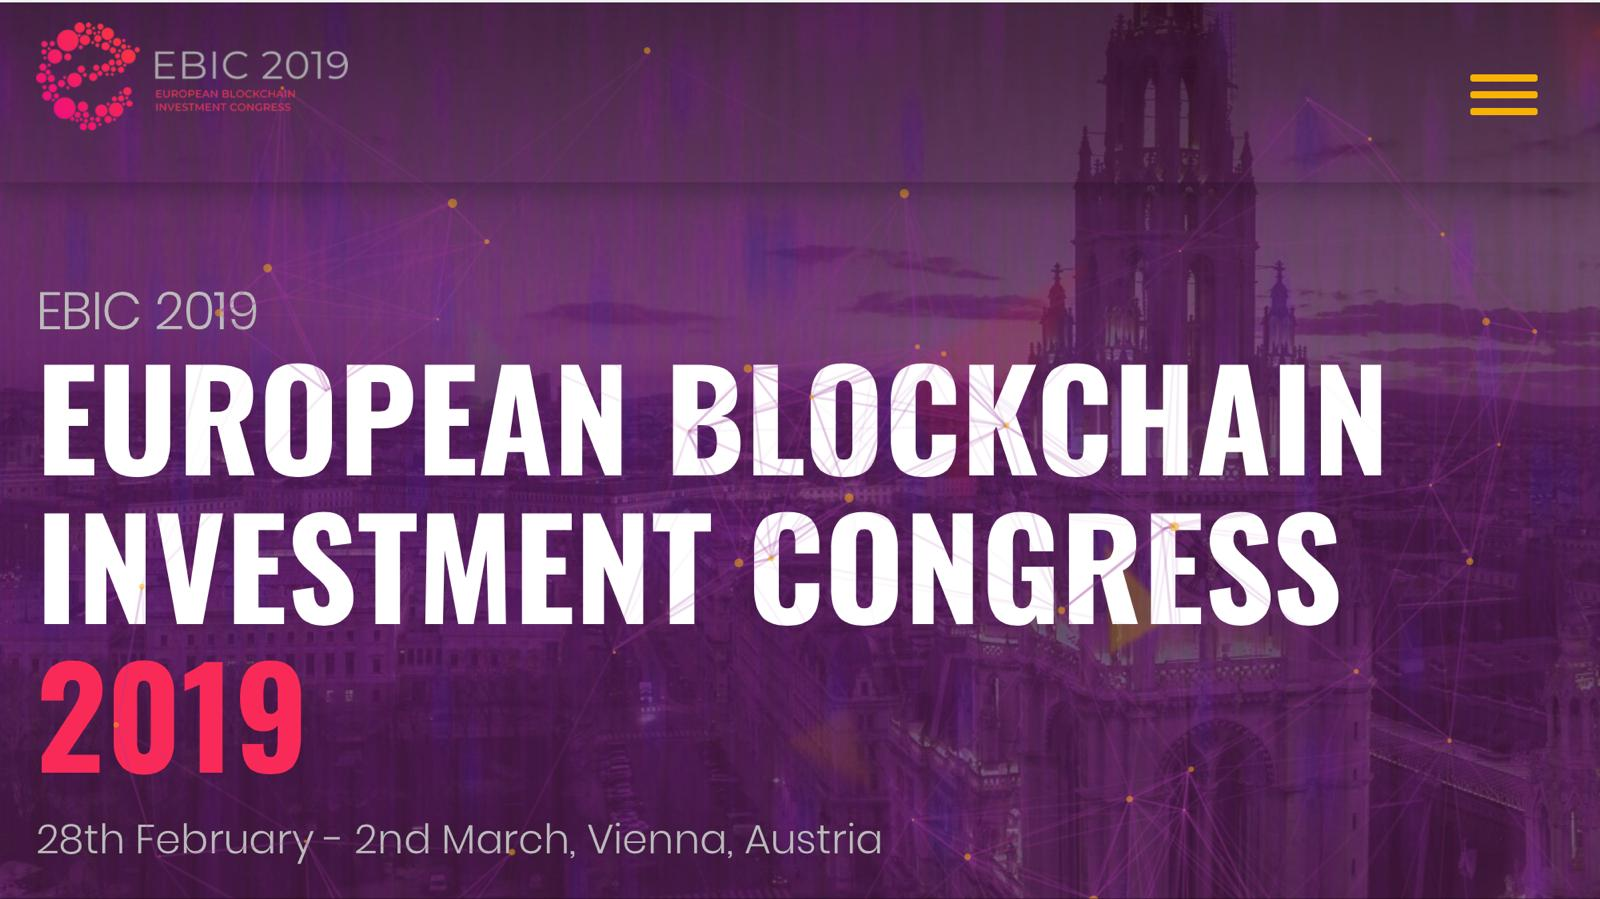 European Blockchain Investment Congress 2019 Bringing Industry Professionals, Investors and Startups Together in Vienna